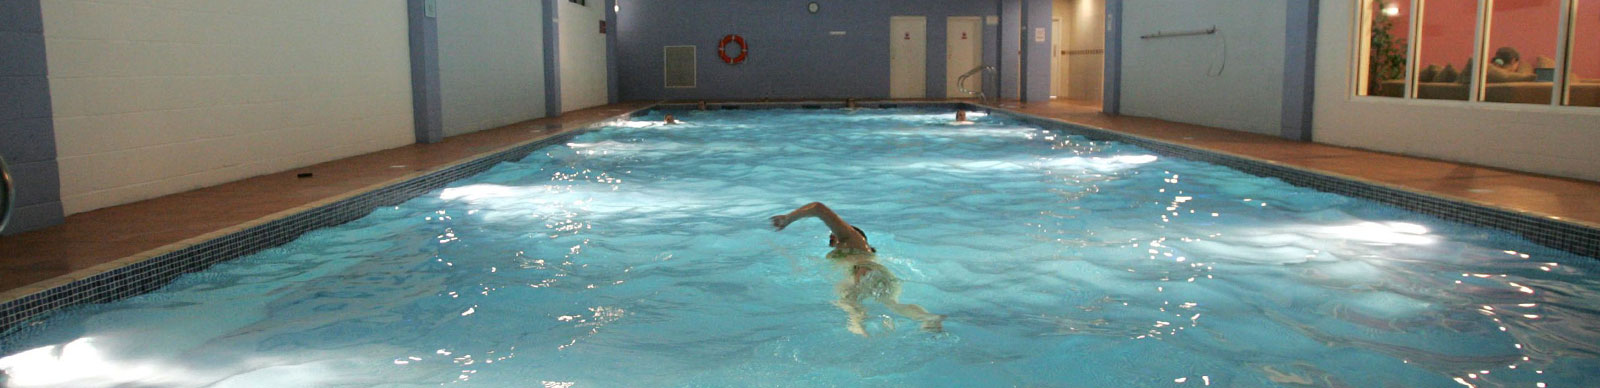 The Oceans swimming pool runs a range of family and baby classes, as well as allowing daily swimming access to members